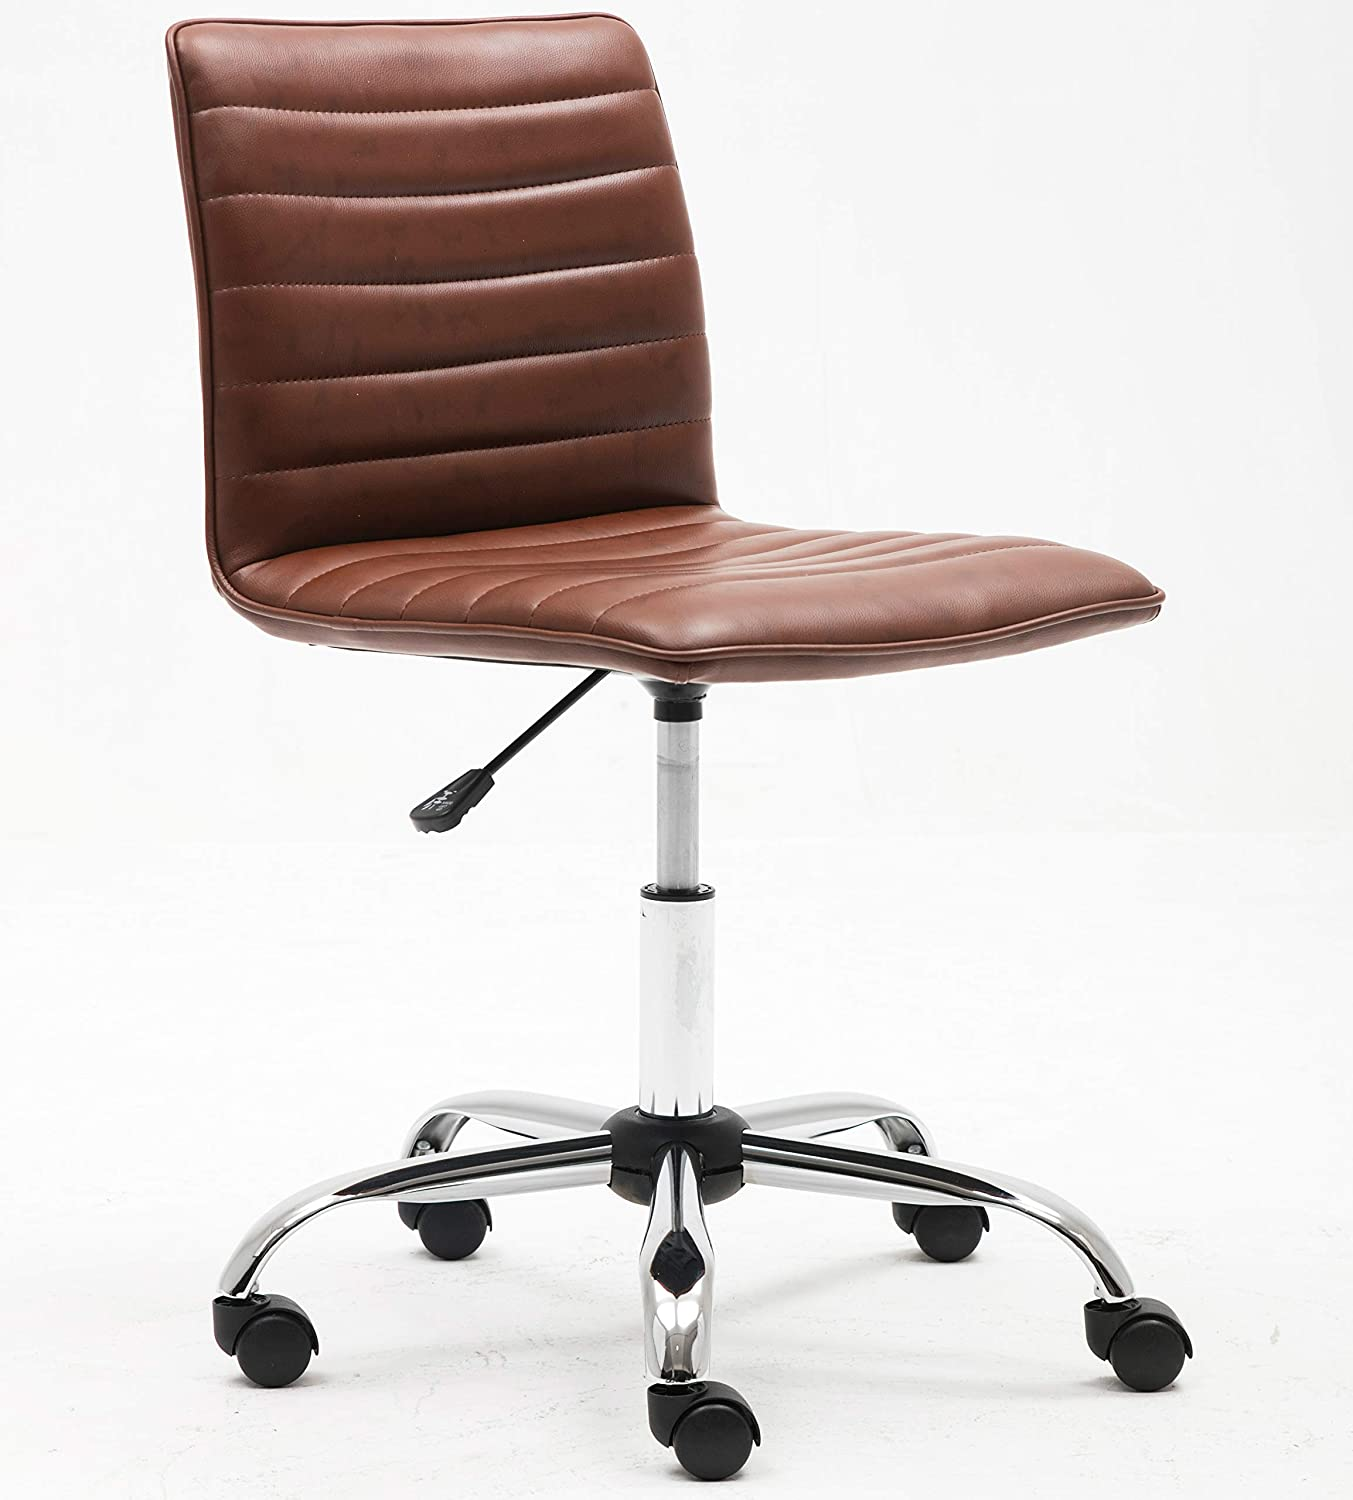 BTEXPERT Mid Back PU Leather Designer Task Ribbed Adjustable Swivel Home Office Chair, Brown